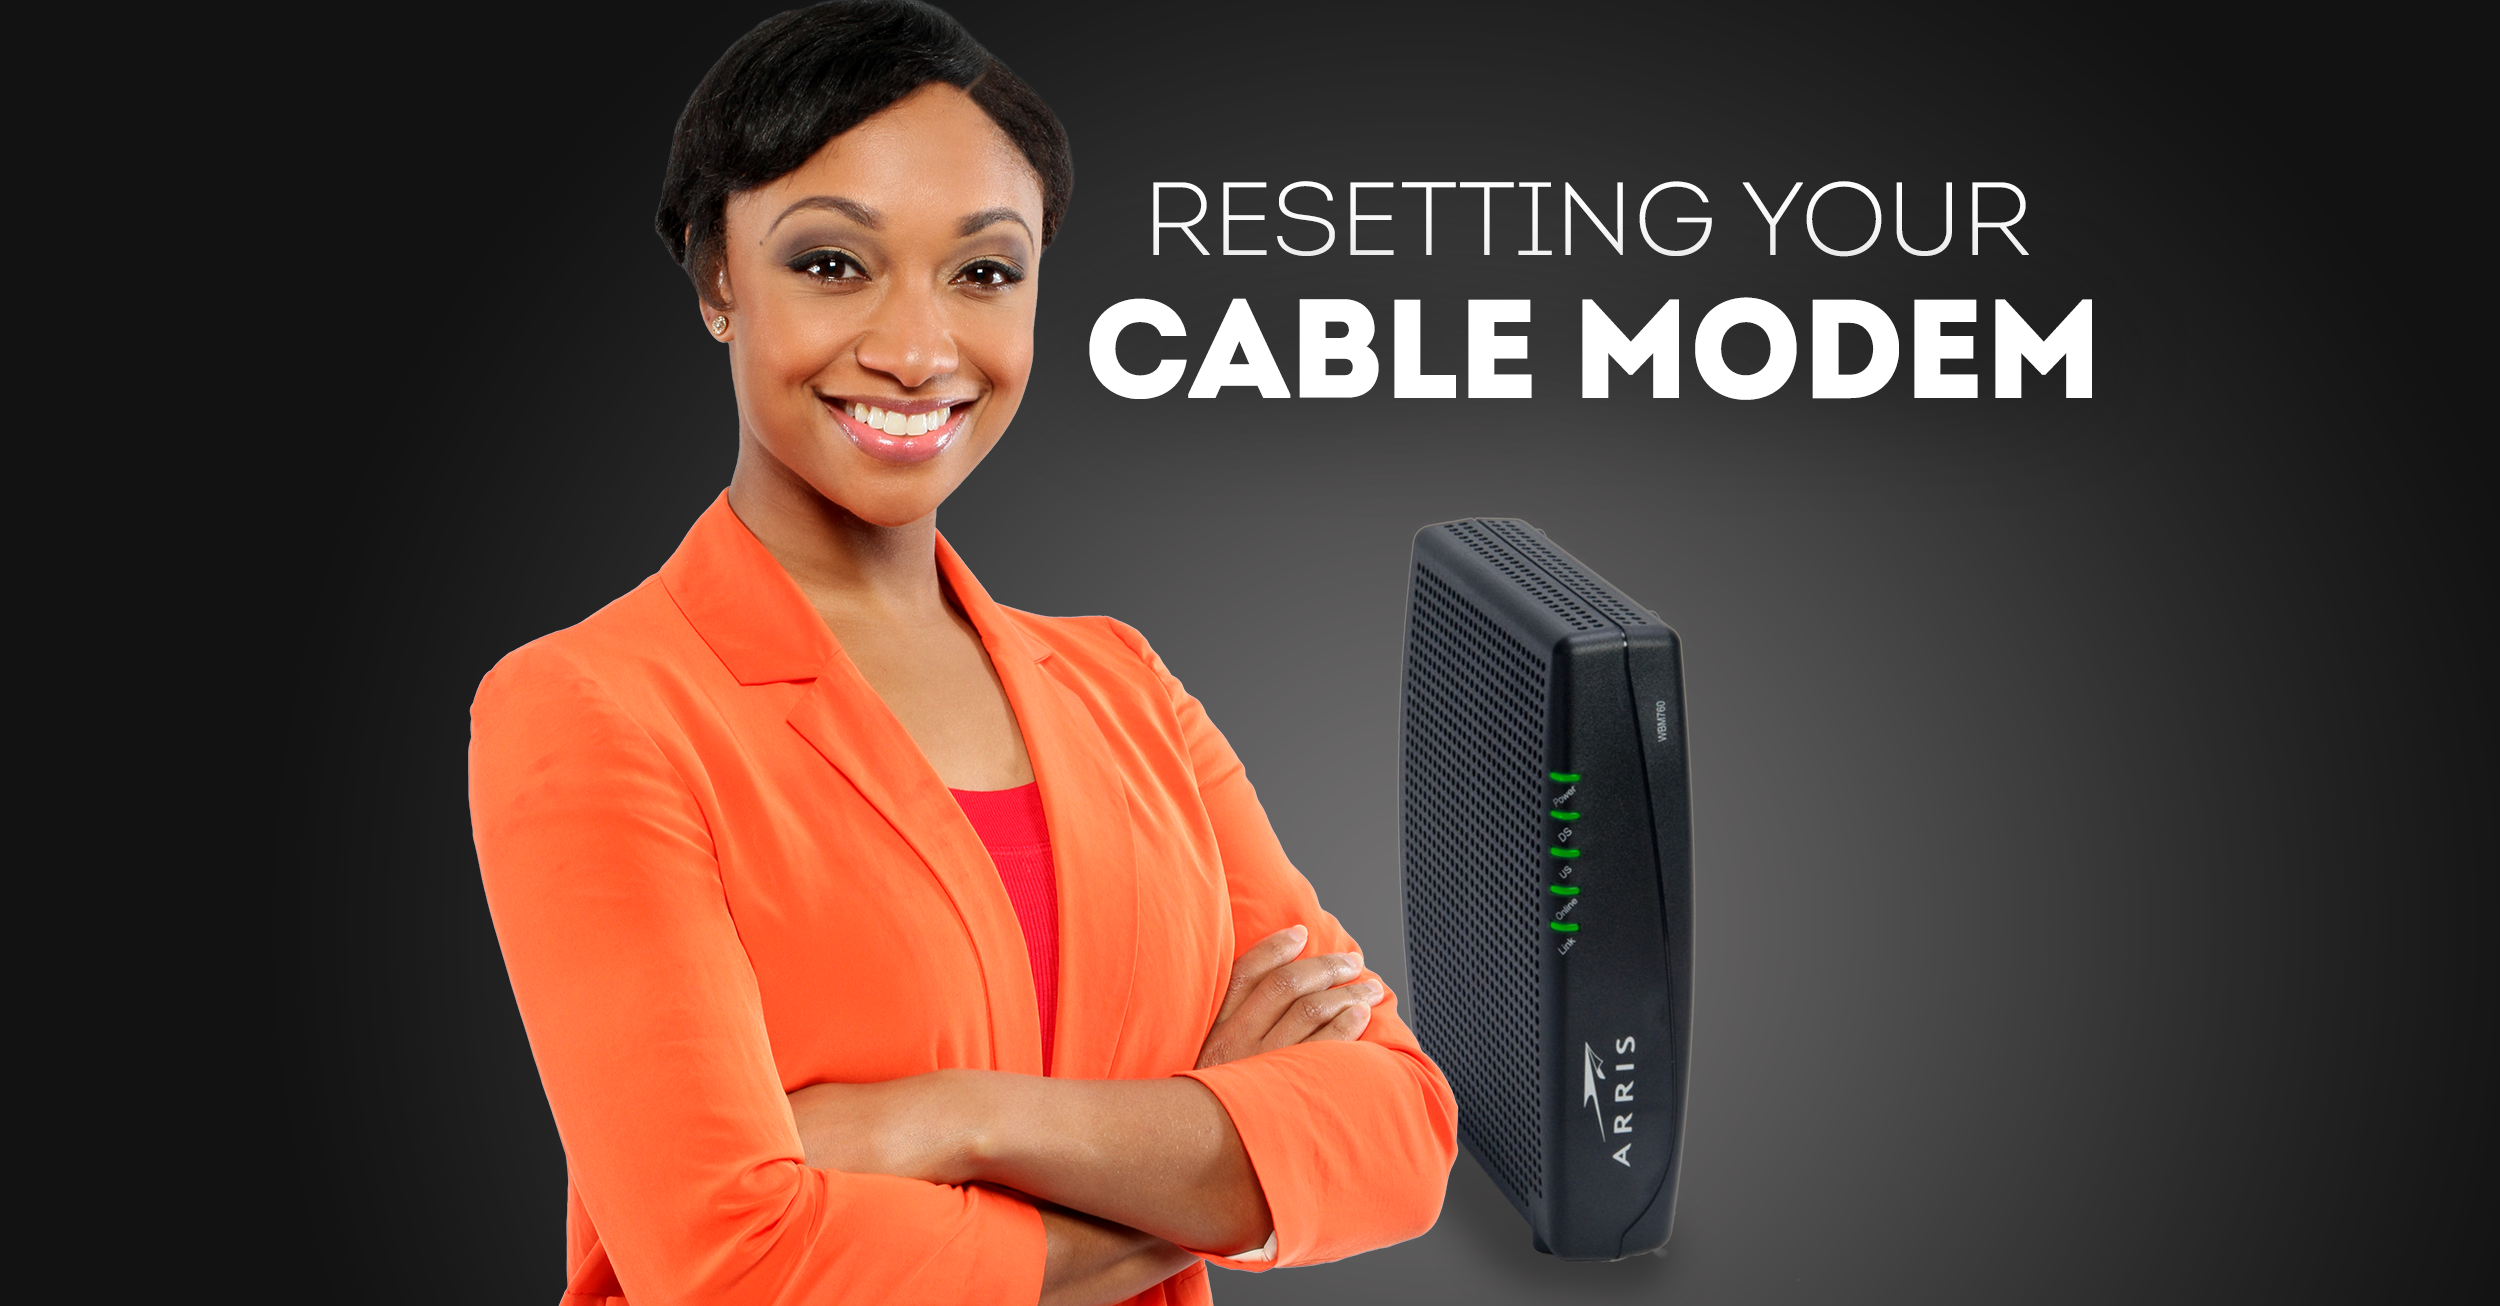 Resetting your cable modem - REV